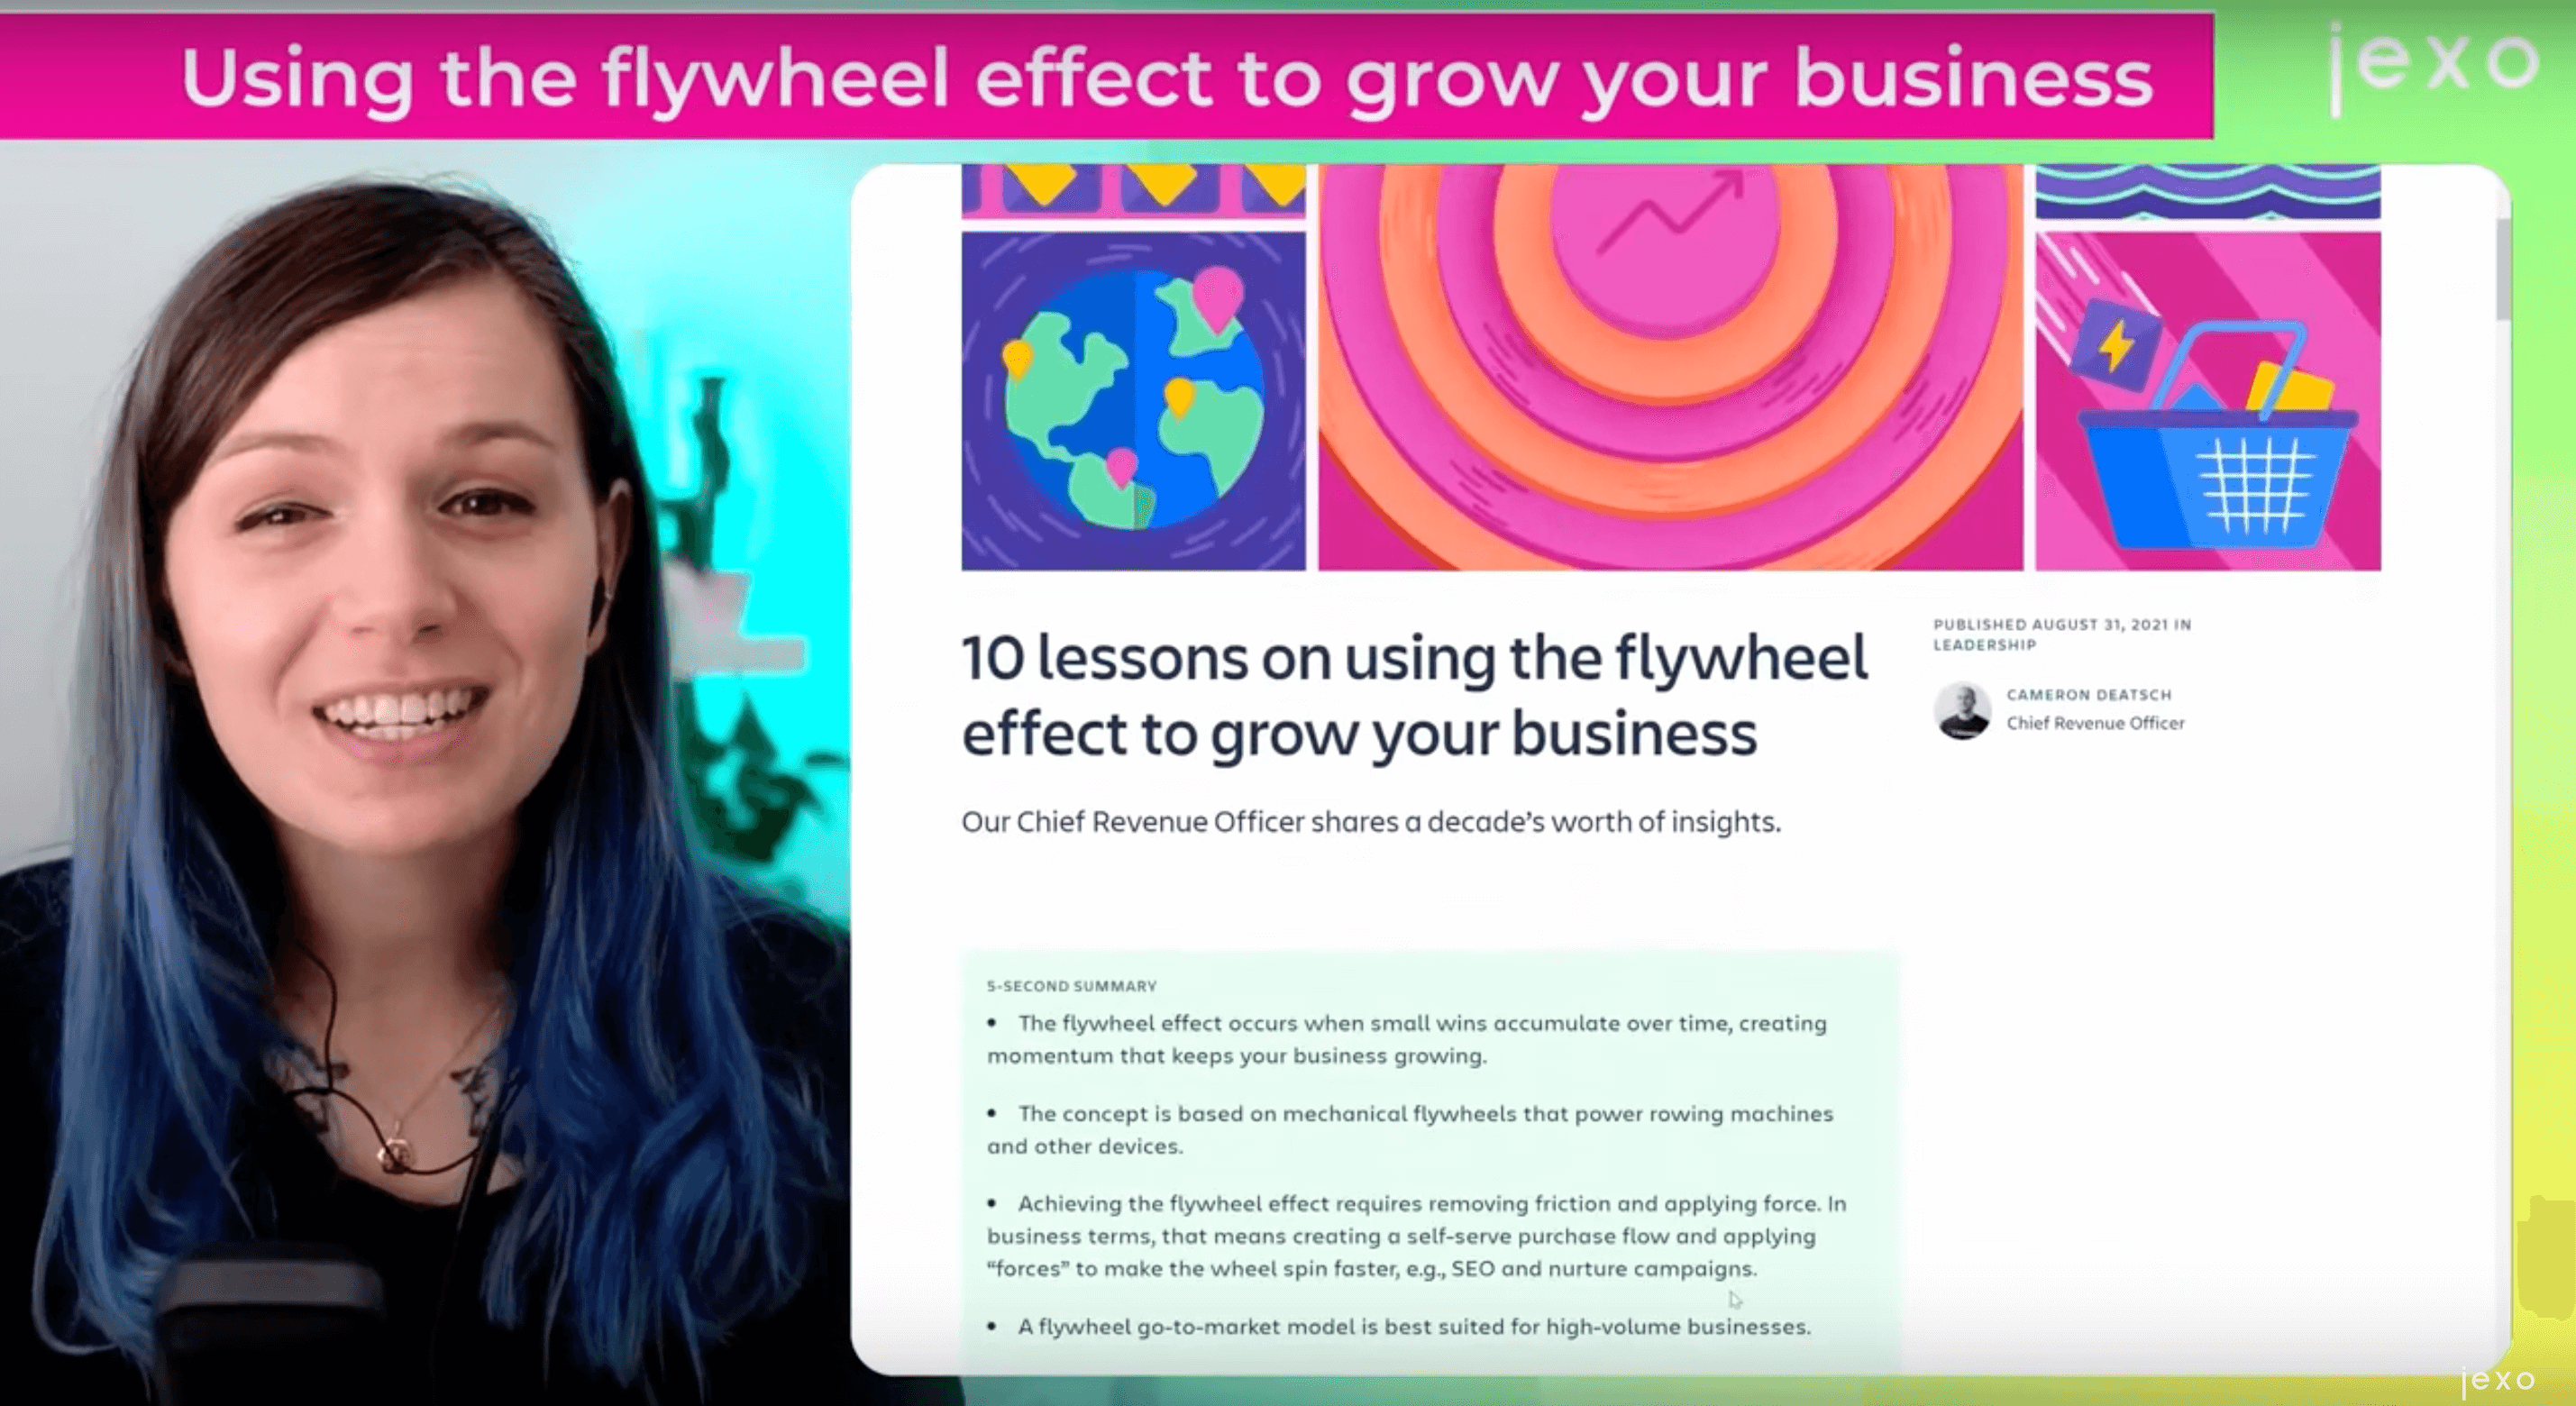 Atlassian Article of the week: Using the flywheel effect to grow your bussines